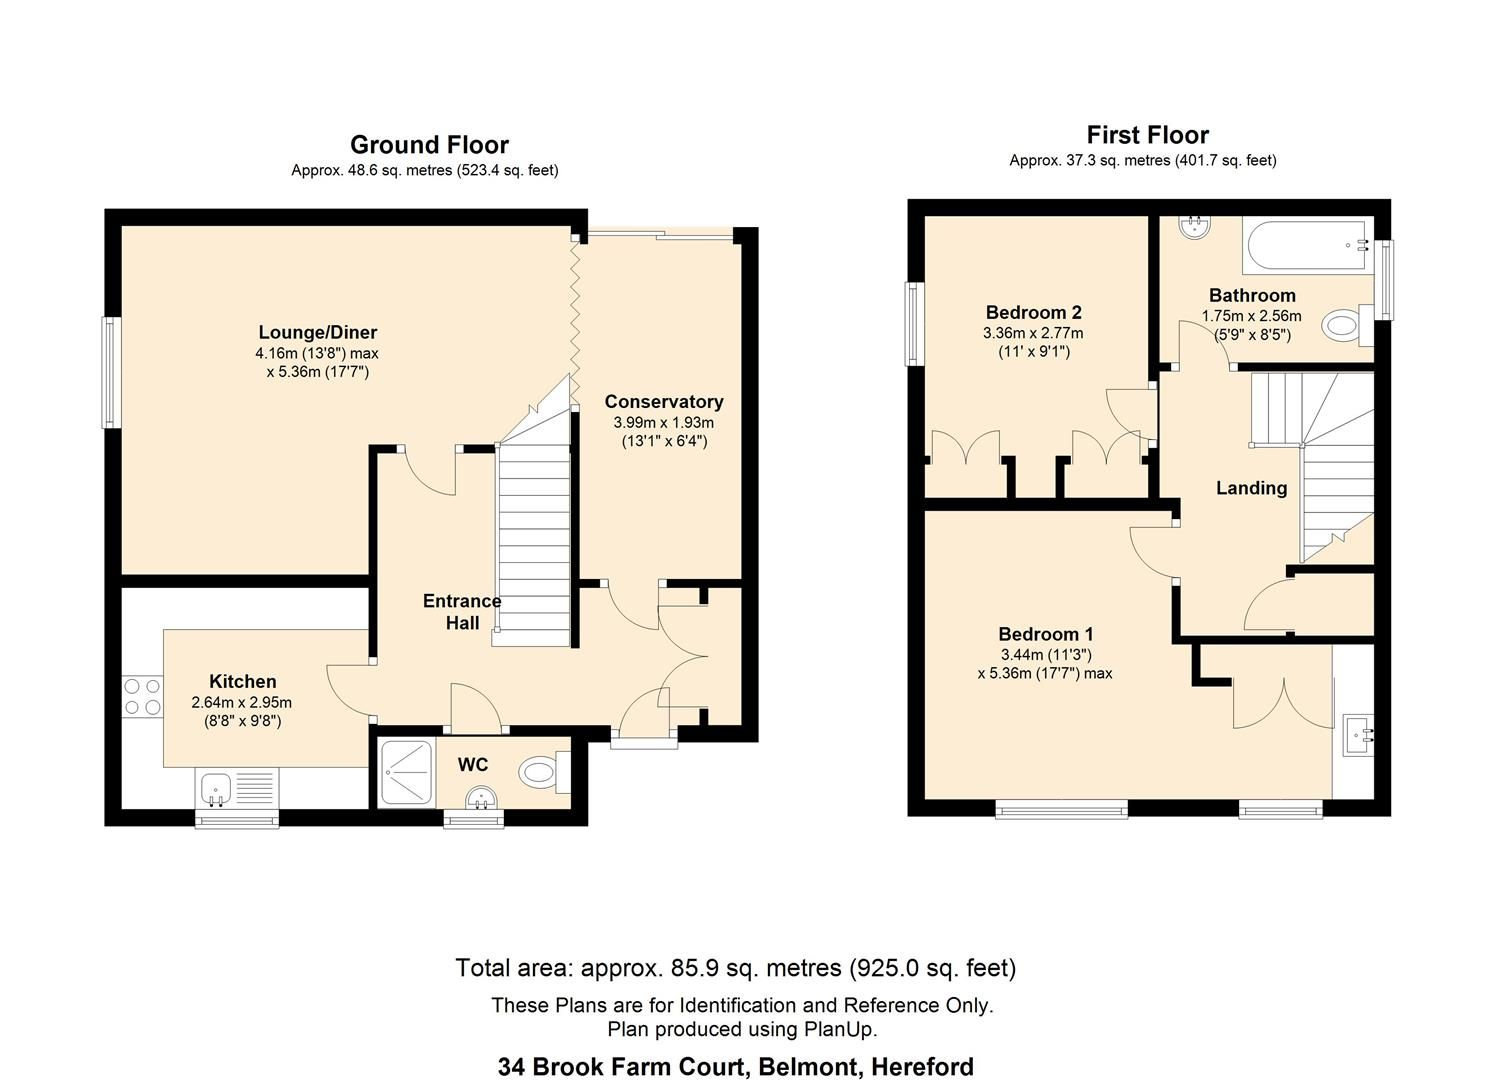 2 bed end-of-terrace for sale in Belmont - Property Floorplan